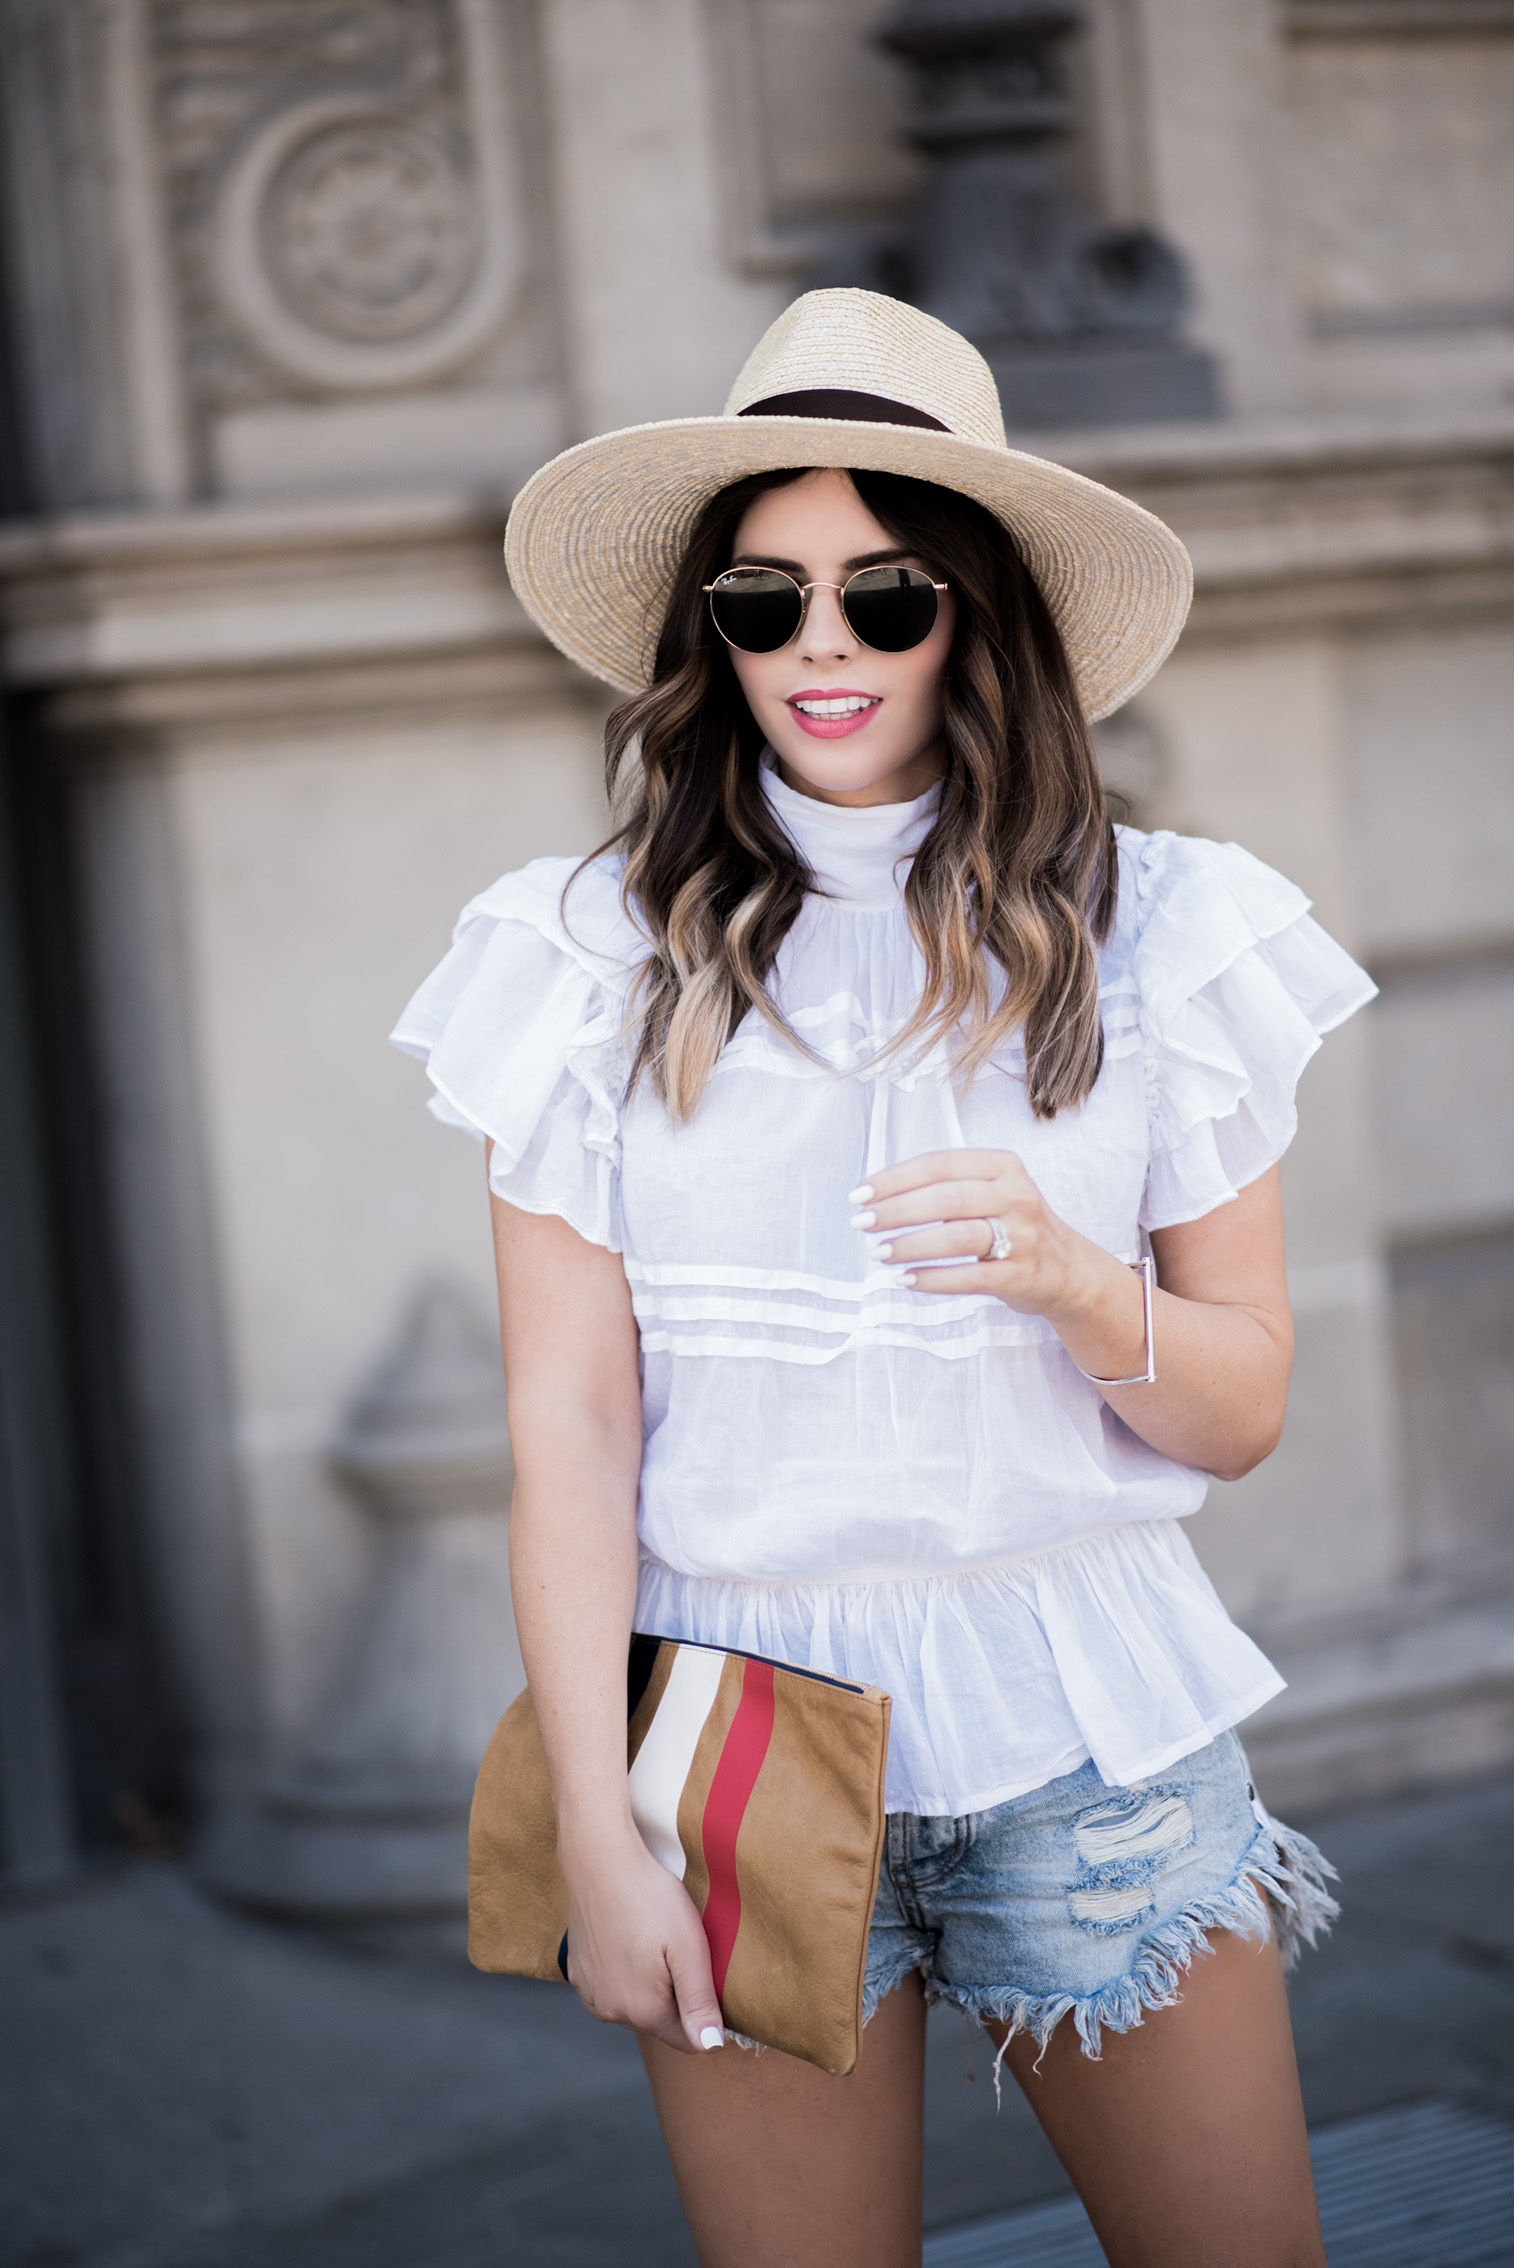 Tiffany Jais Houston fashion and lifestyle blogger   Happy 4th-The Barcelona Edition   White ruffle blouse, Brixton Willow Hat, Clare V Clutch, One Teaspoon Brandos Shorts, casual outfits, What to wear on the 4th of July, 4th of July outfit ideas